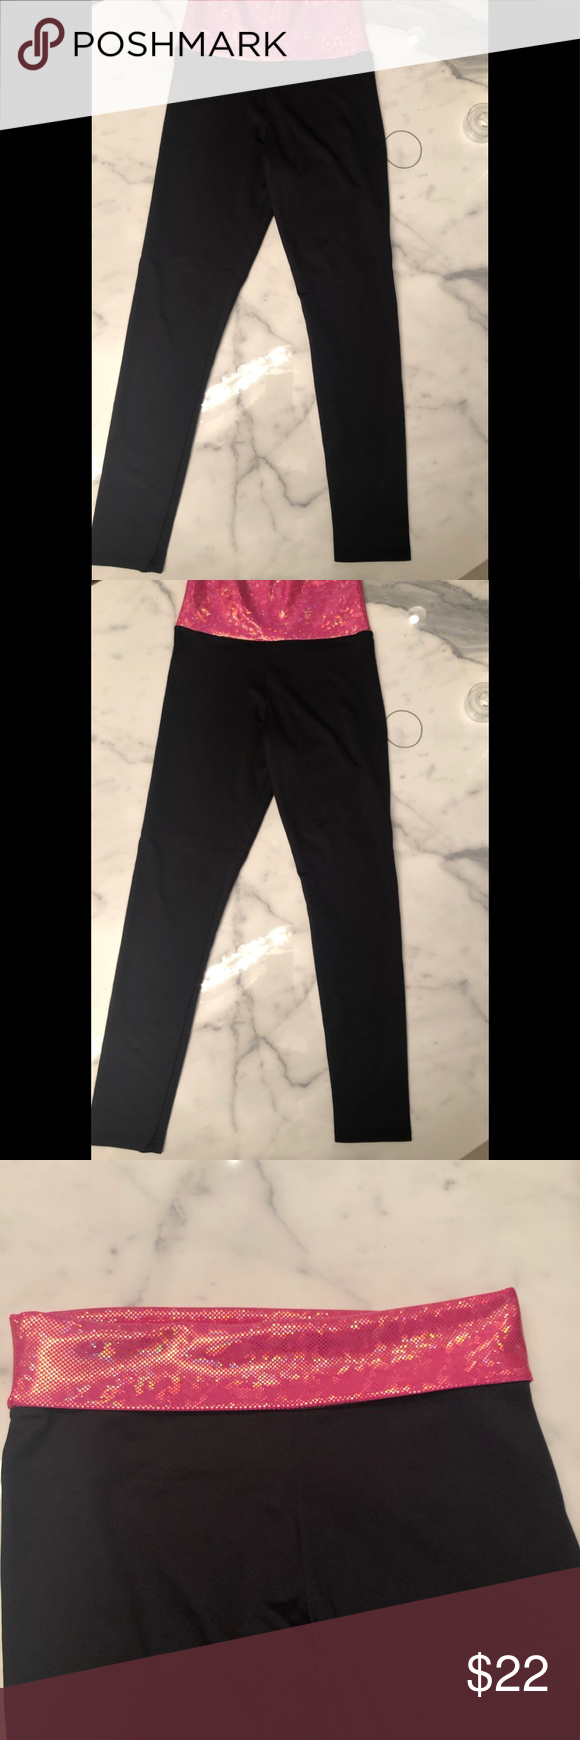 silky leggings with iridescent pink waistband These leggings are so comfortable and substantial. Not too heavy. But the fun part about them is the pink iridescent waist band that you can wear up or fold down. Wear a black tight tank top put on these pants and see what happens! Of course they're great for Zumba, Pilates, yoga, hot yoga, and any kind of work out bwxxx Pants Skinny #pilatescourses silky leggings with iridescent pink waistband These leggings are so comfortable and substantial. Not #pilatescourses